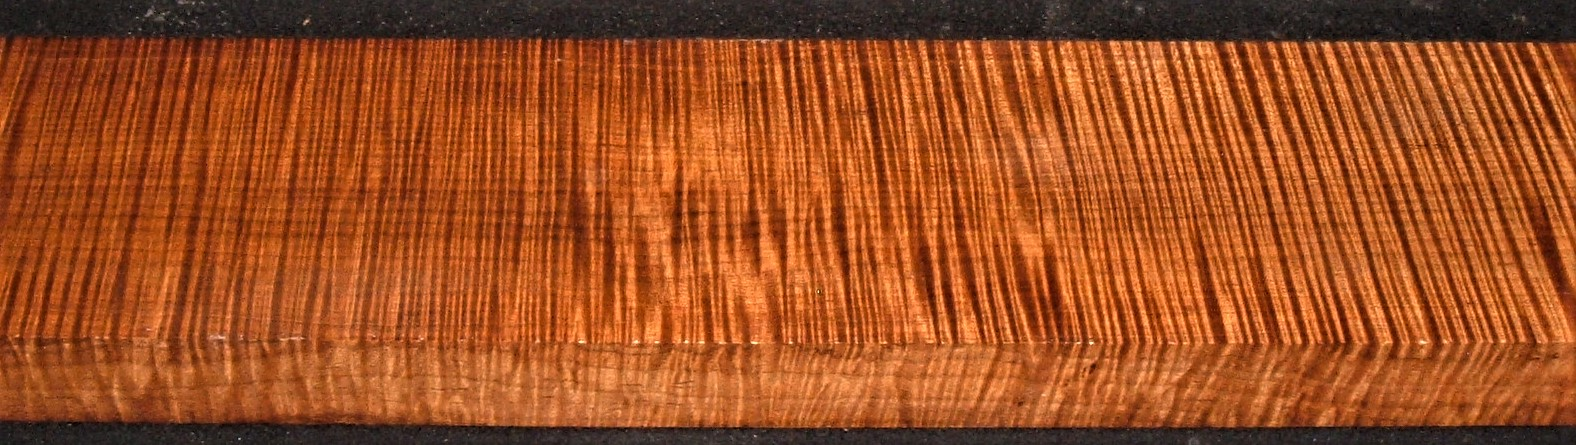 QRM2012-391JK, 1-7/8x5-3/4x44, Quartersawn Roasted Curly Maple